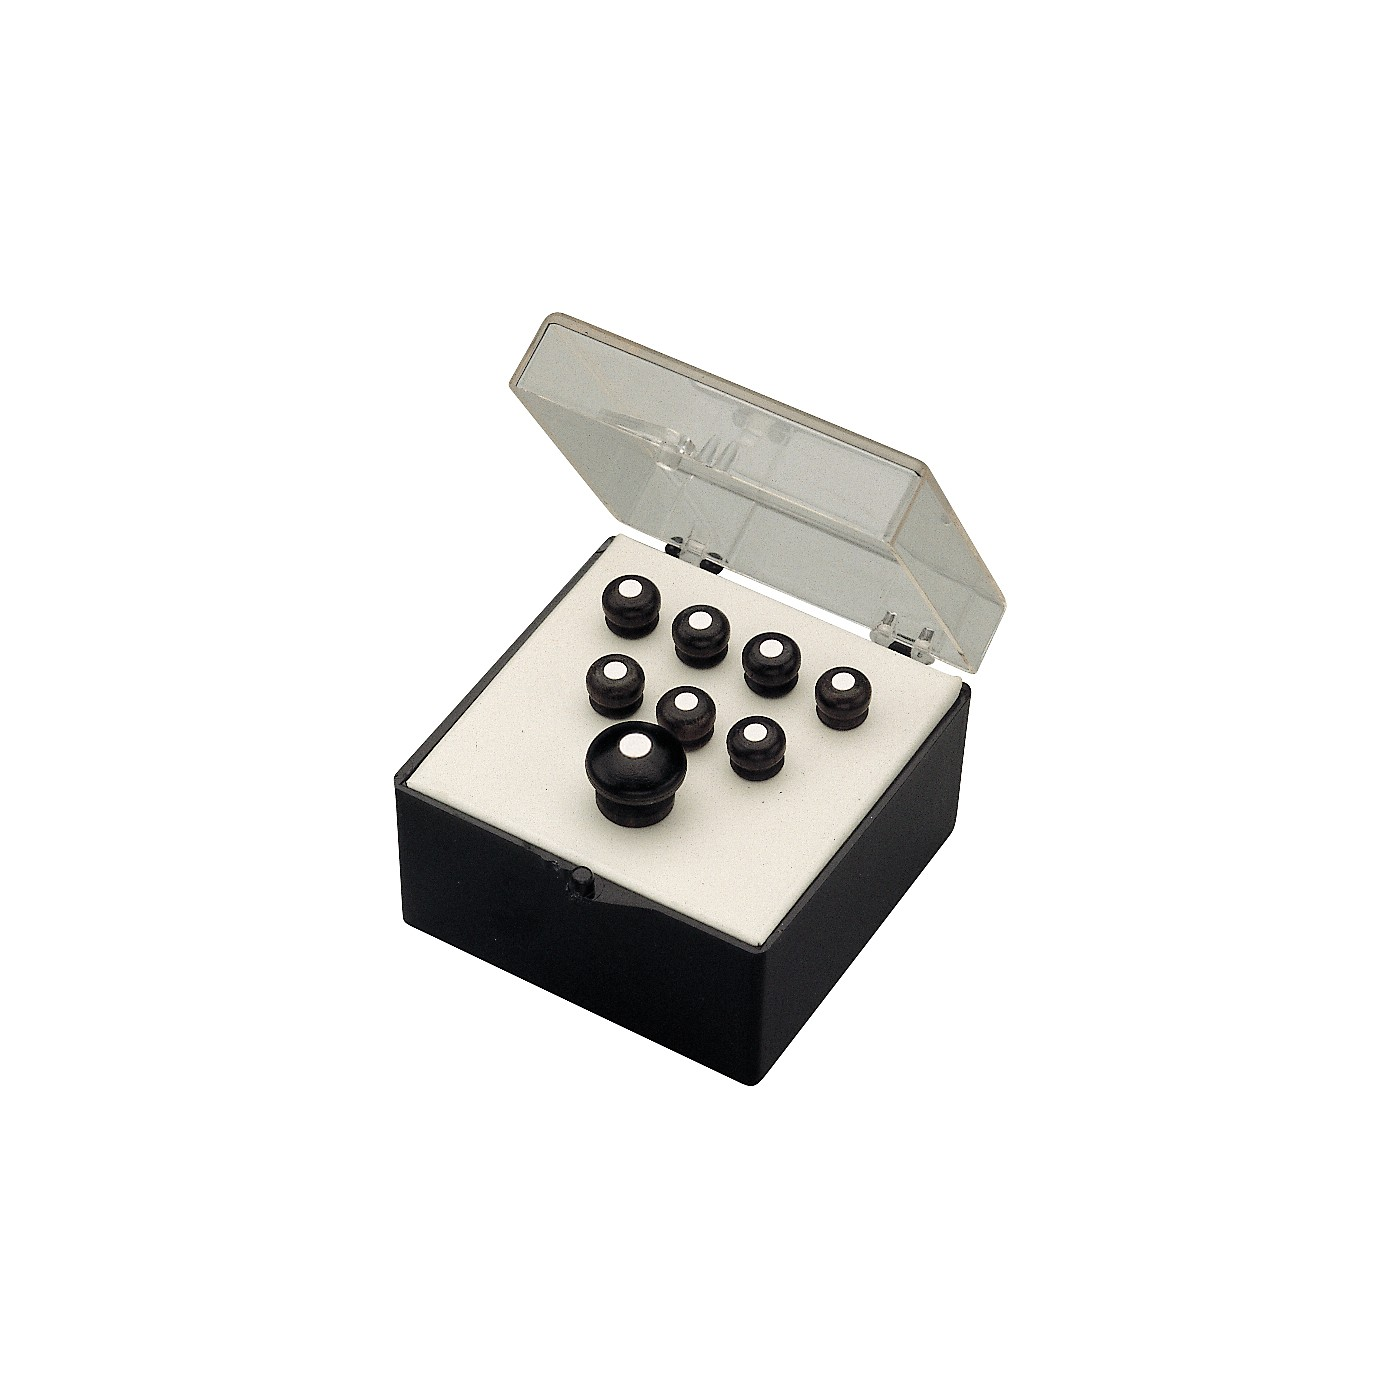 Martin Bridge and End Pin Set in Black with White Dots thumbnail